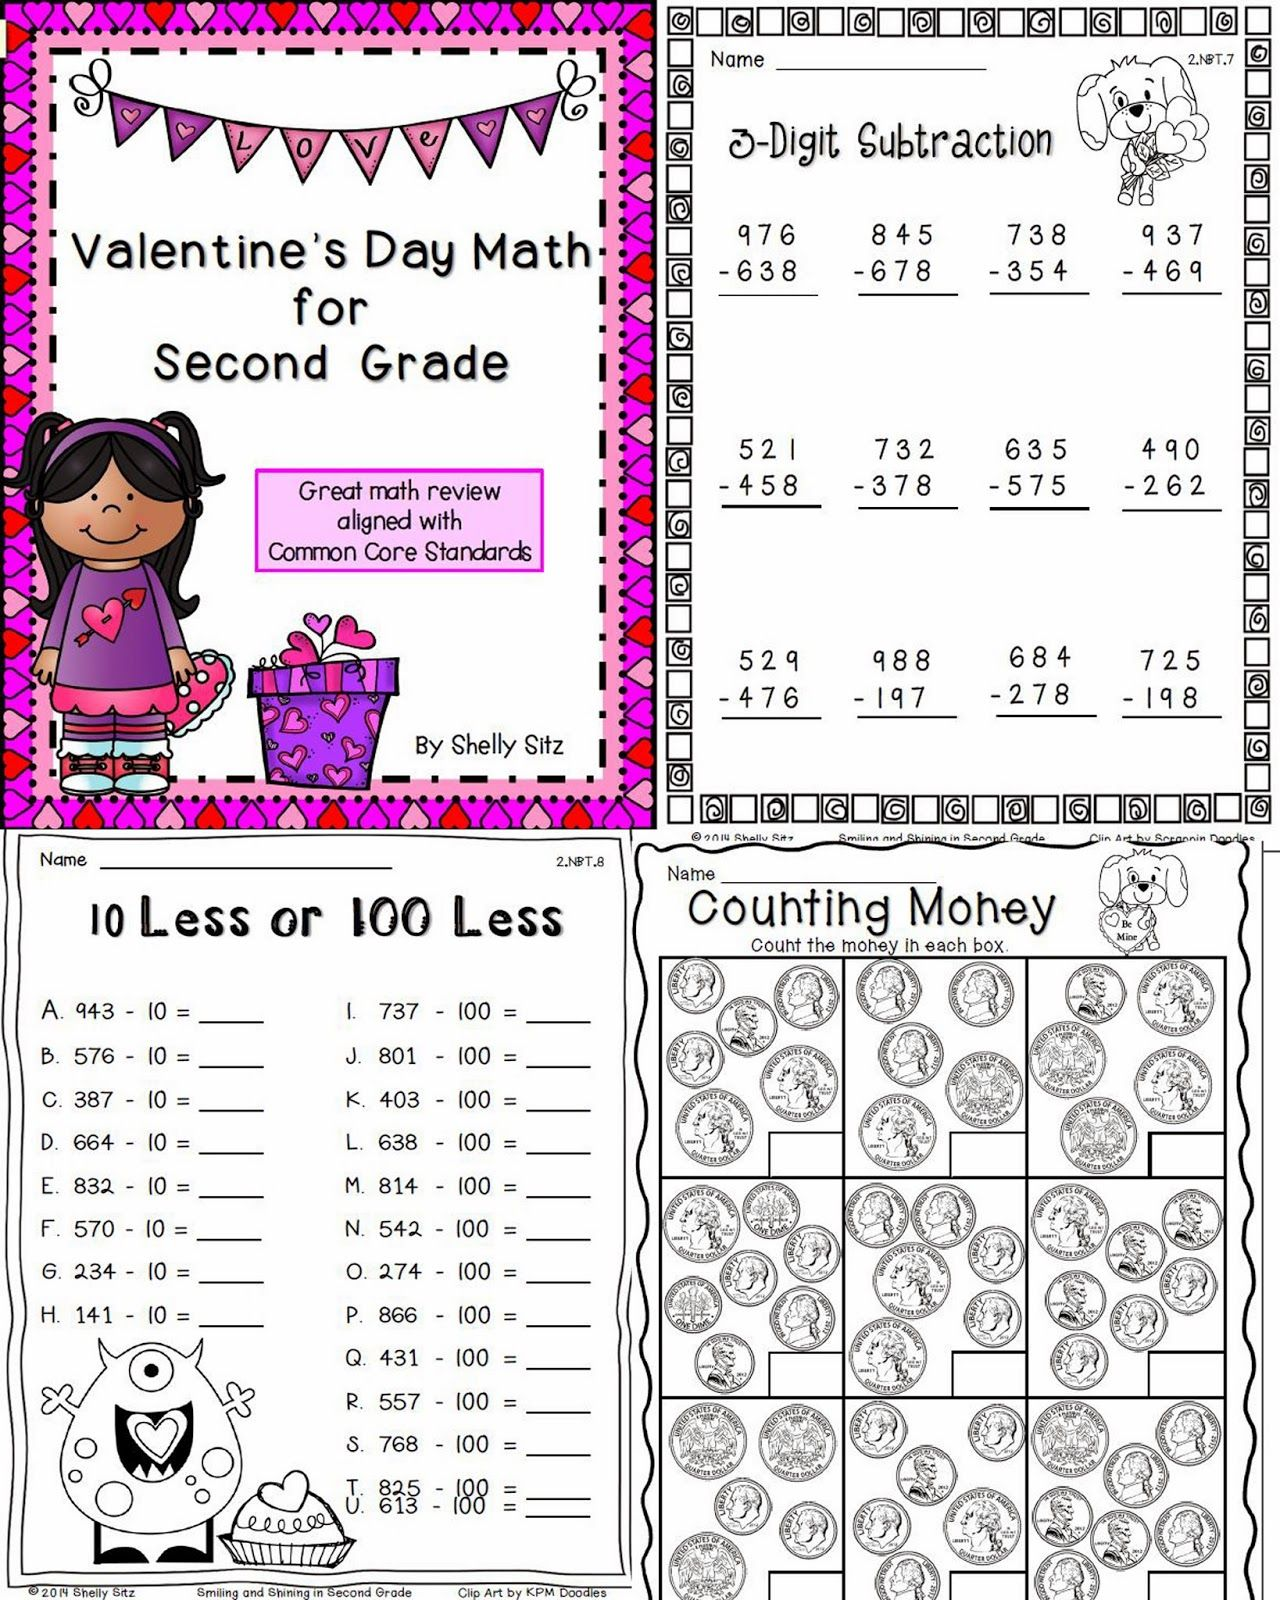 smiling and shining in second grade valentine 39 s math for second grade math second grade. Black Bedroom Furniture Sets. Home Design Ideas